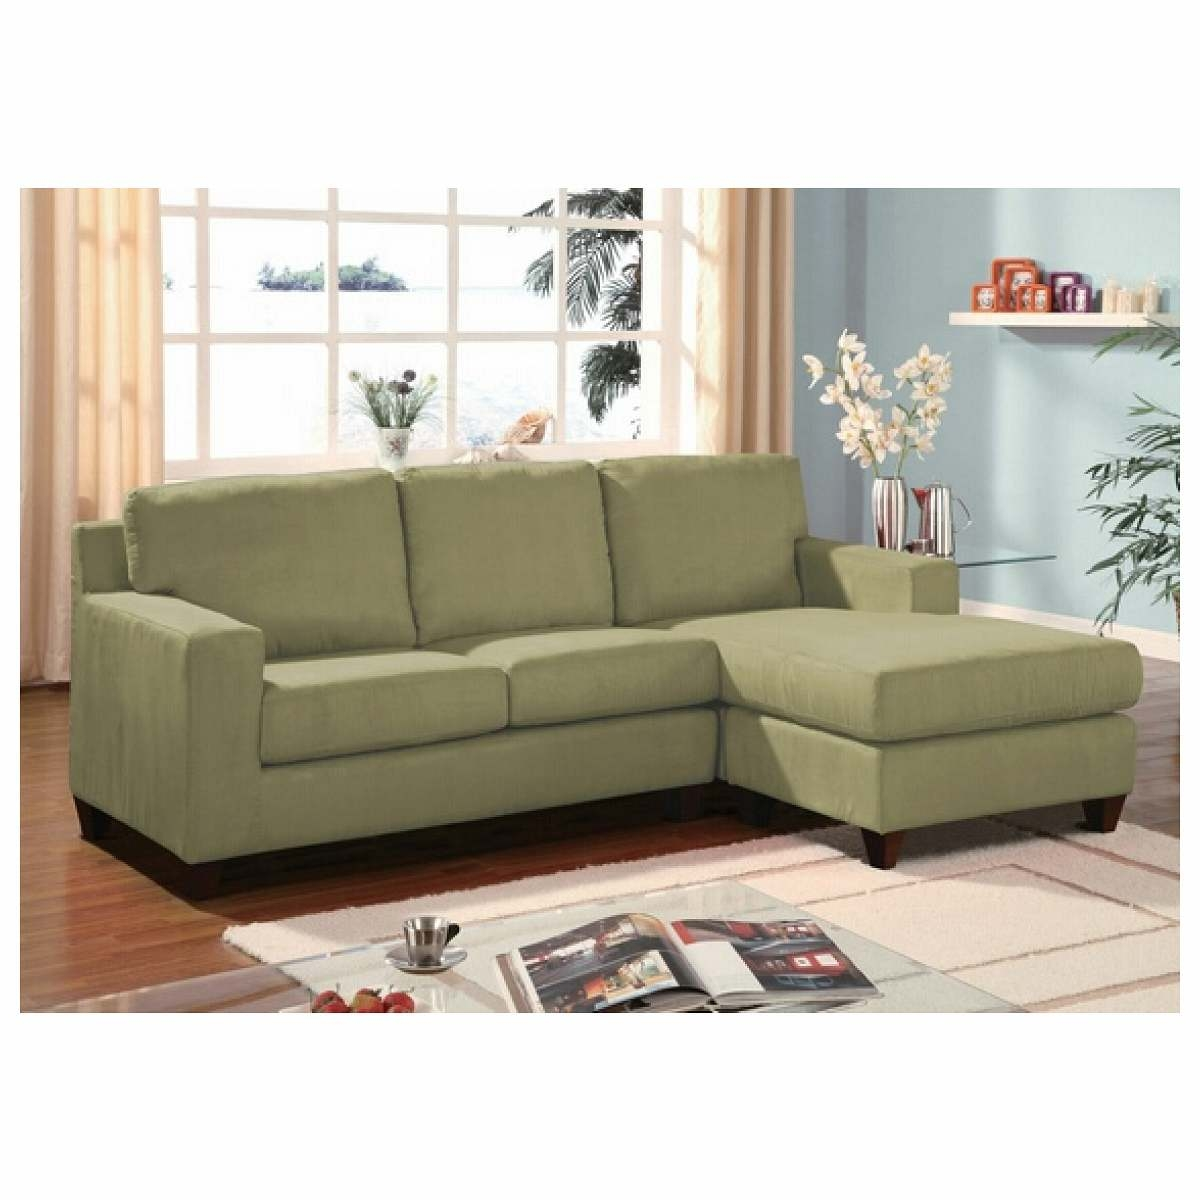 Furniture Green Microfiber Reversible Sectional Sofa With Chaise With Apartment Sectional Sofa With Chaise (Image 12 of 15)